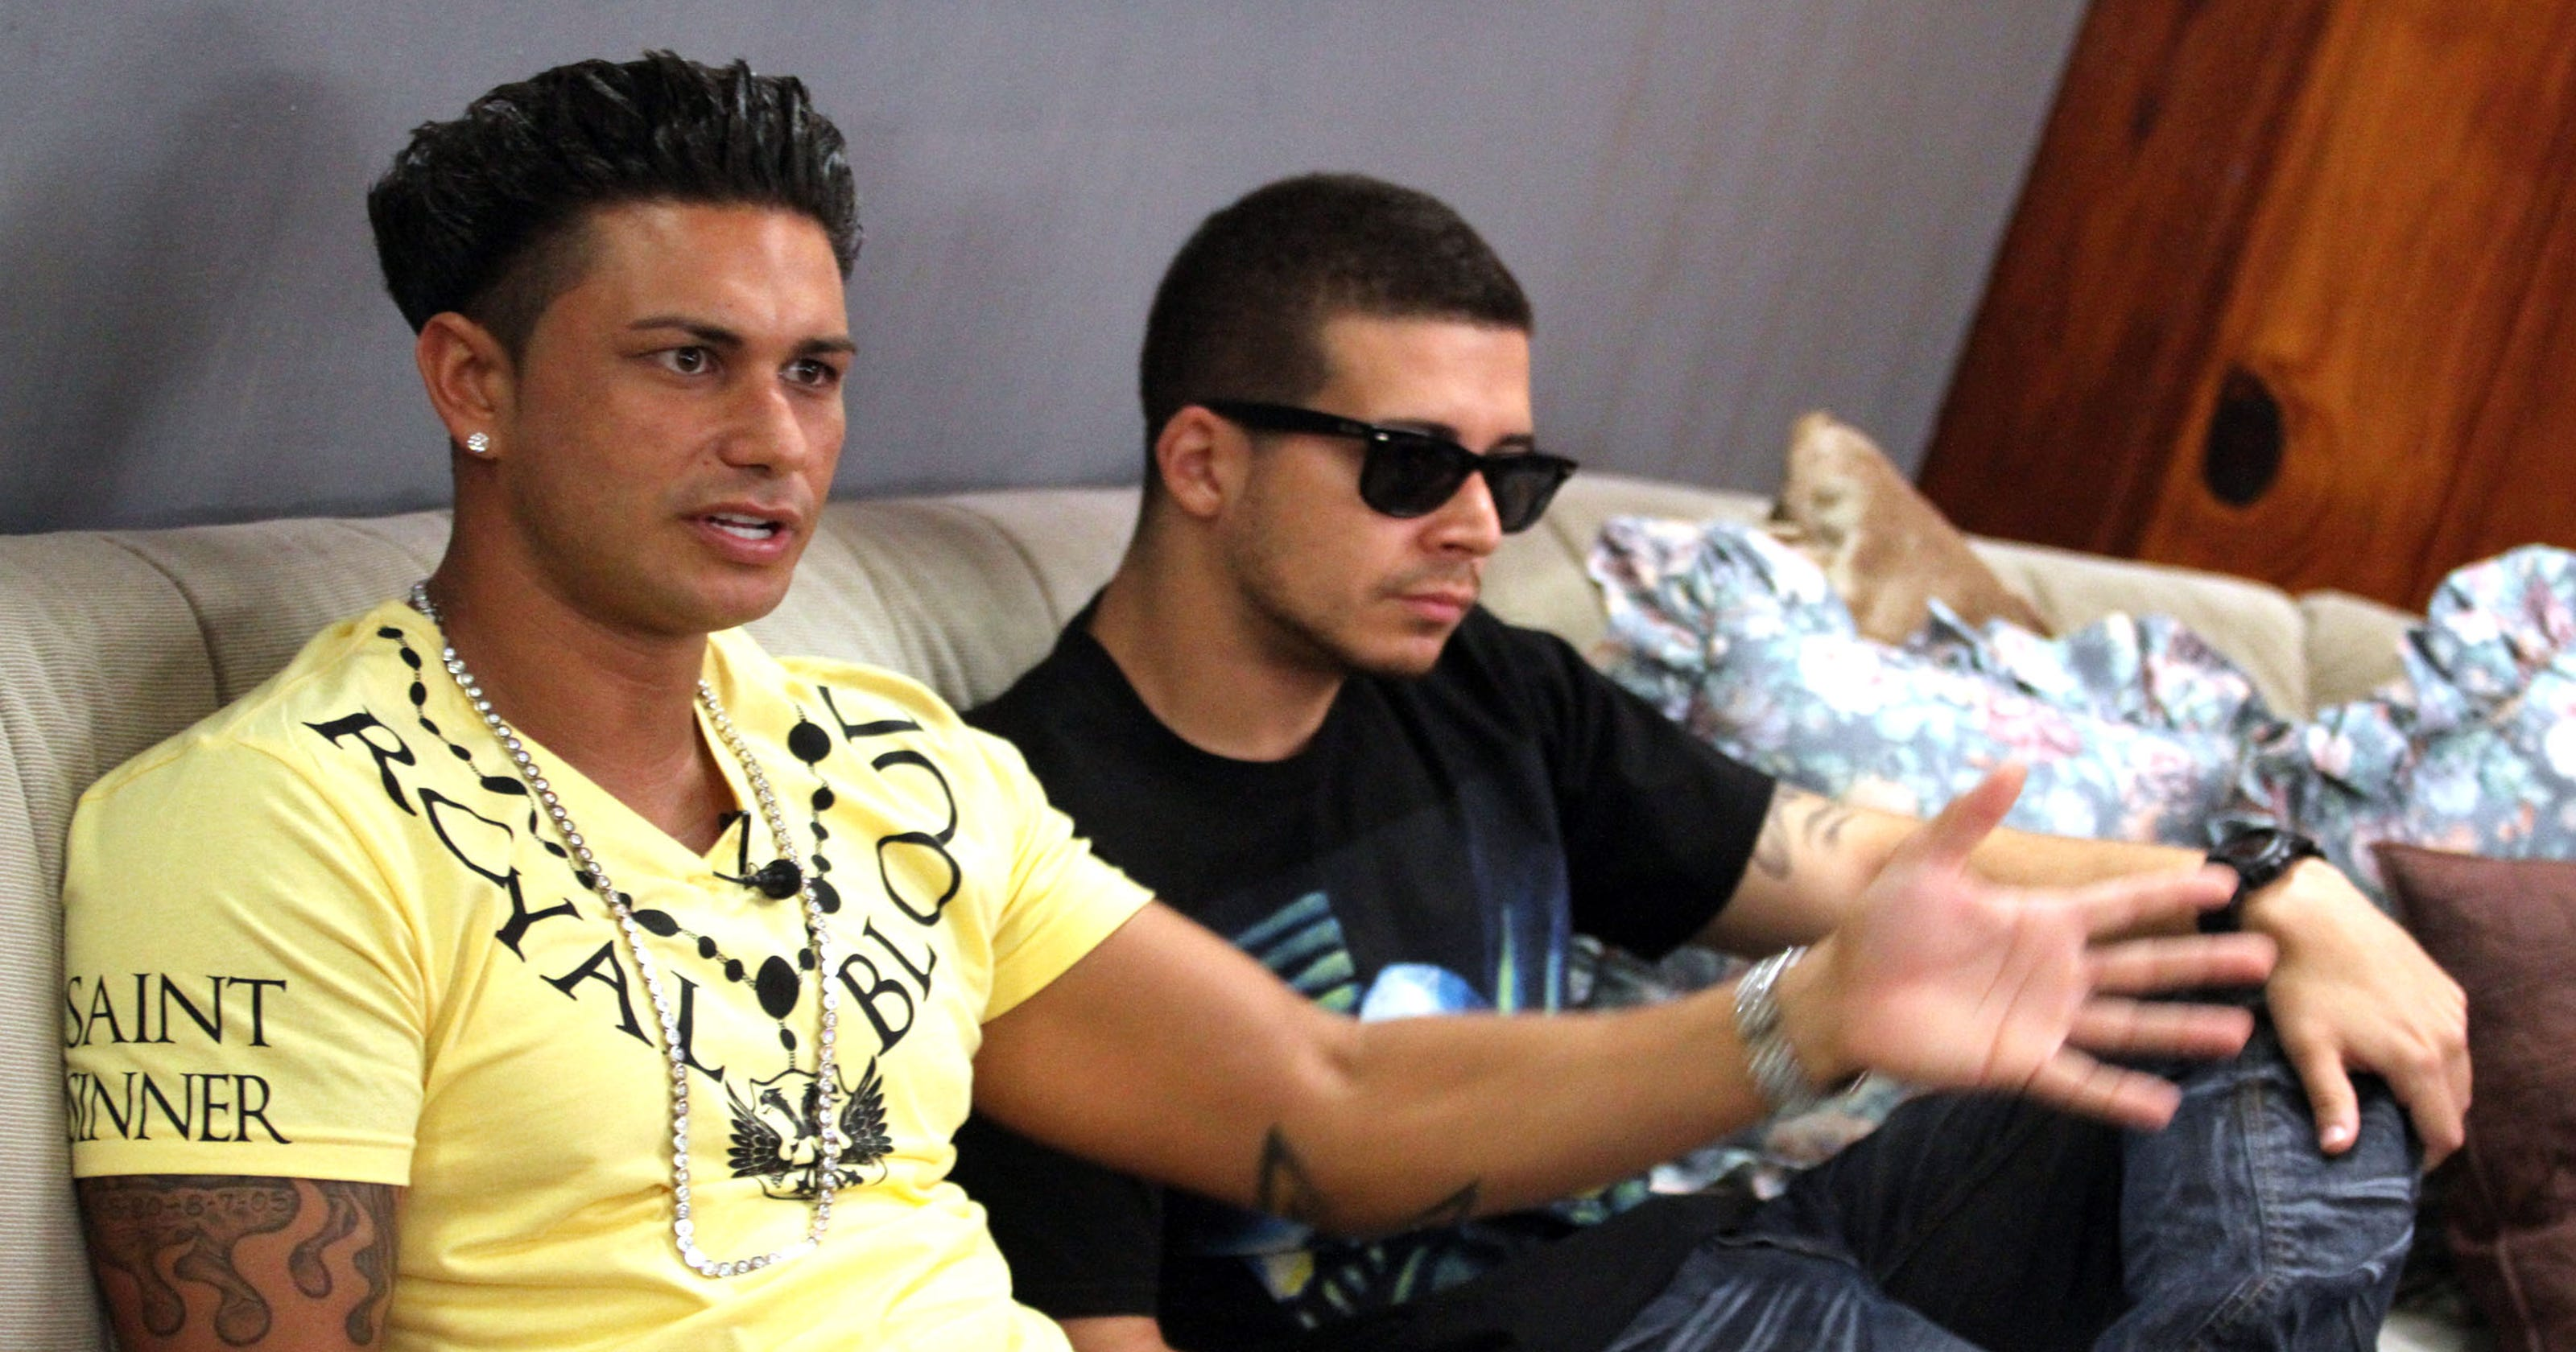 Jersey Shore Stars Pauly D And Vinny Take Double Shot At Love On MTV